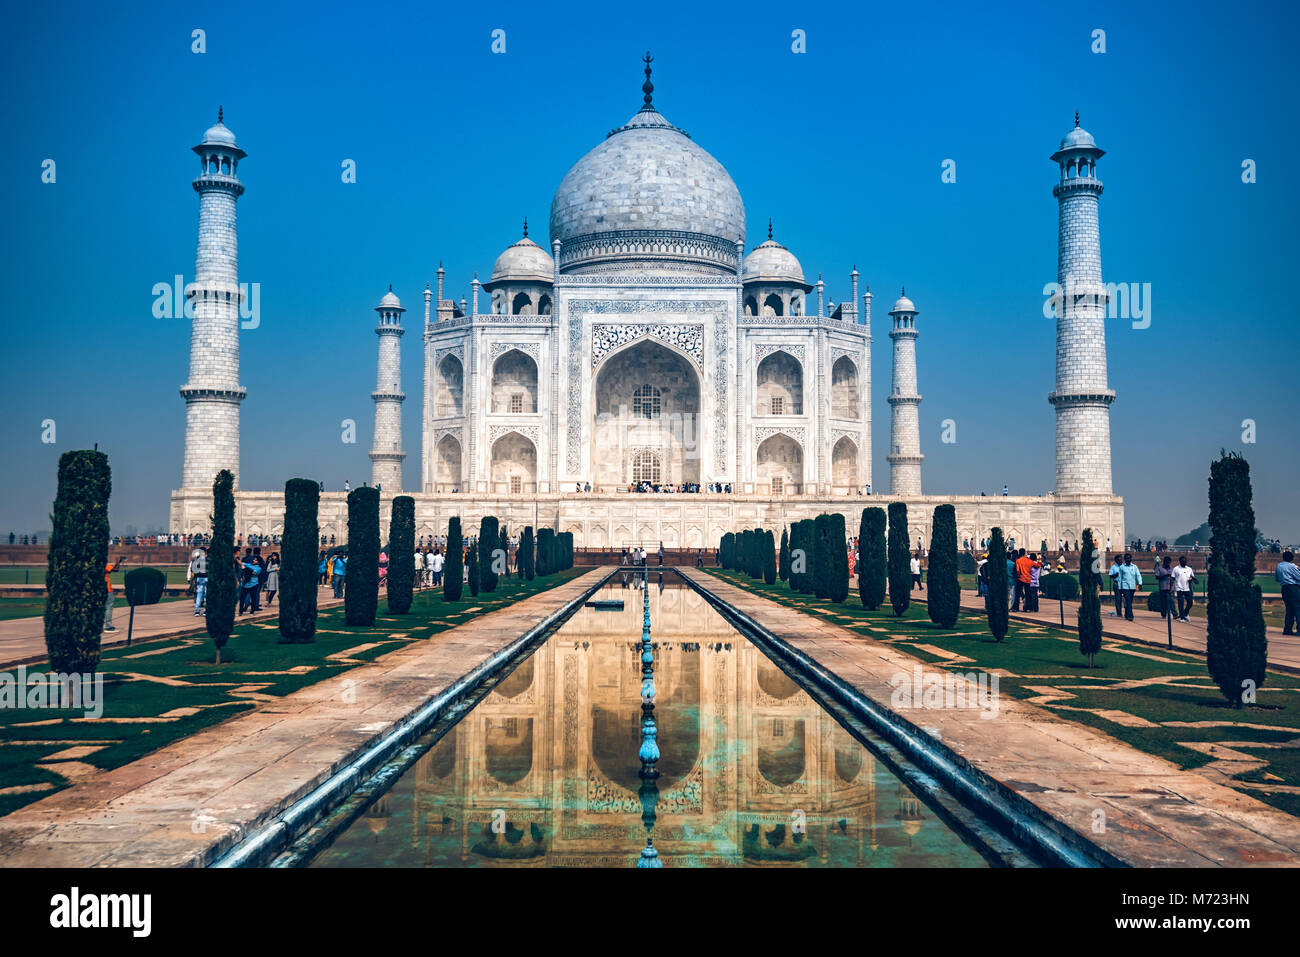 AGRA, India - 8 Novembre 2017: Taj Mahal vista panoramica in Agra, India. Immagini Stock